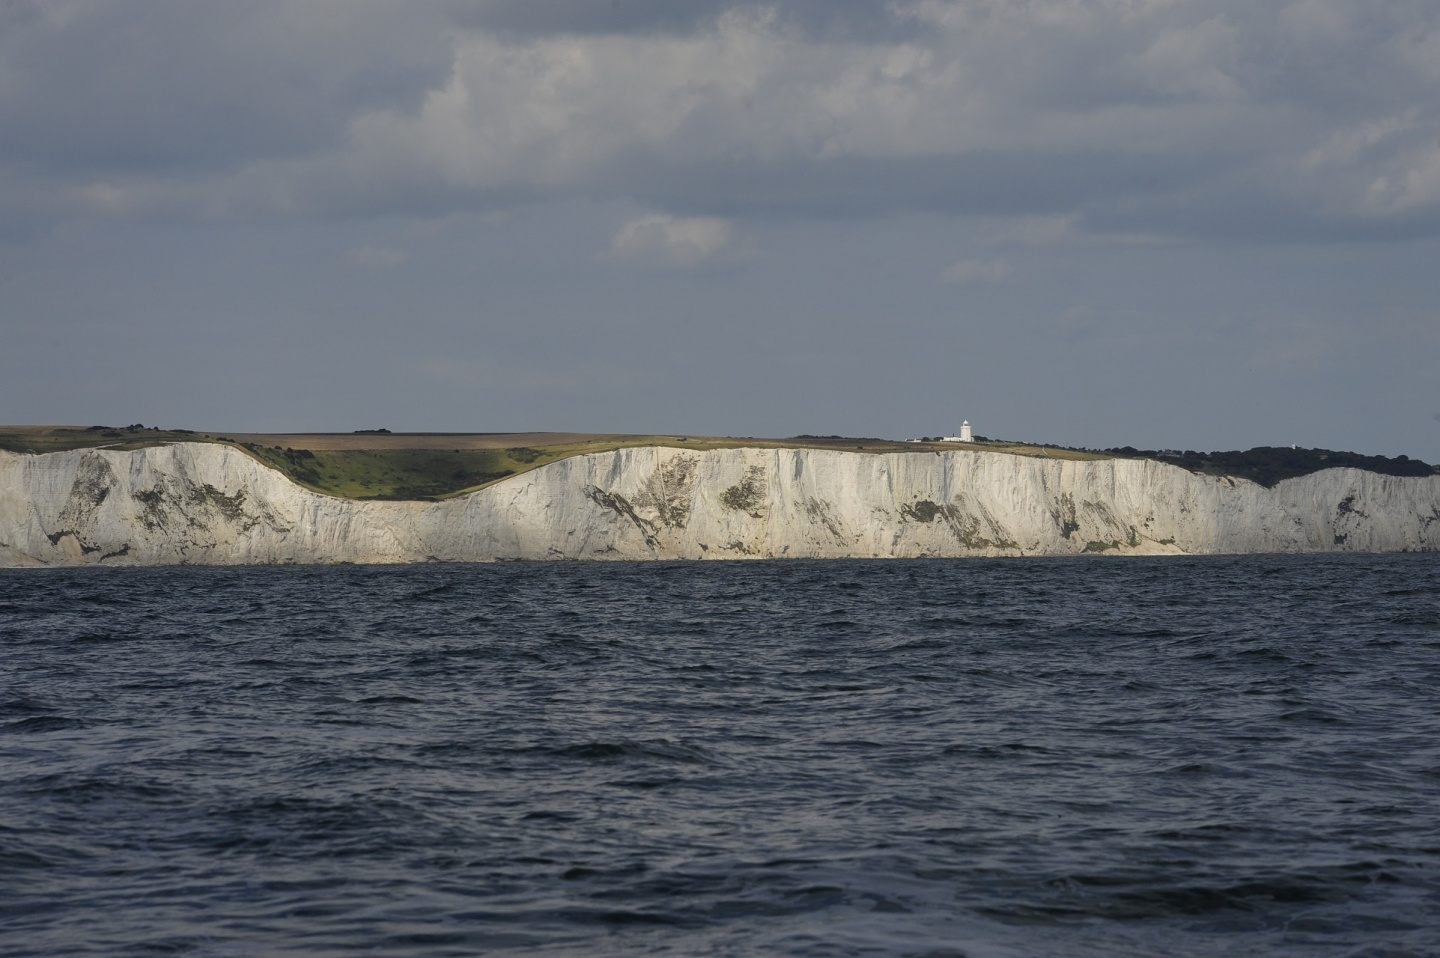 Leaving the white cliffs